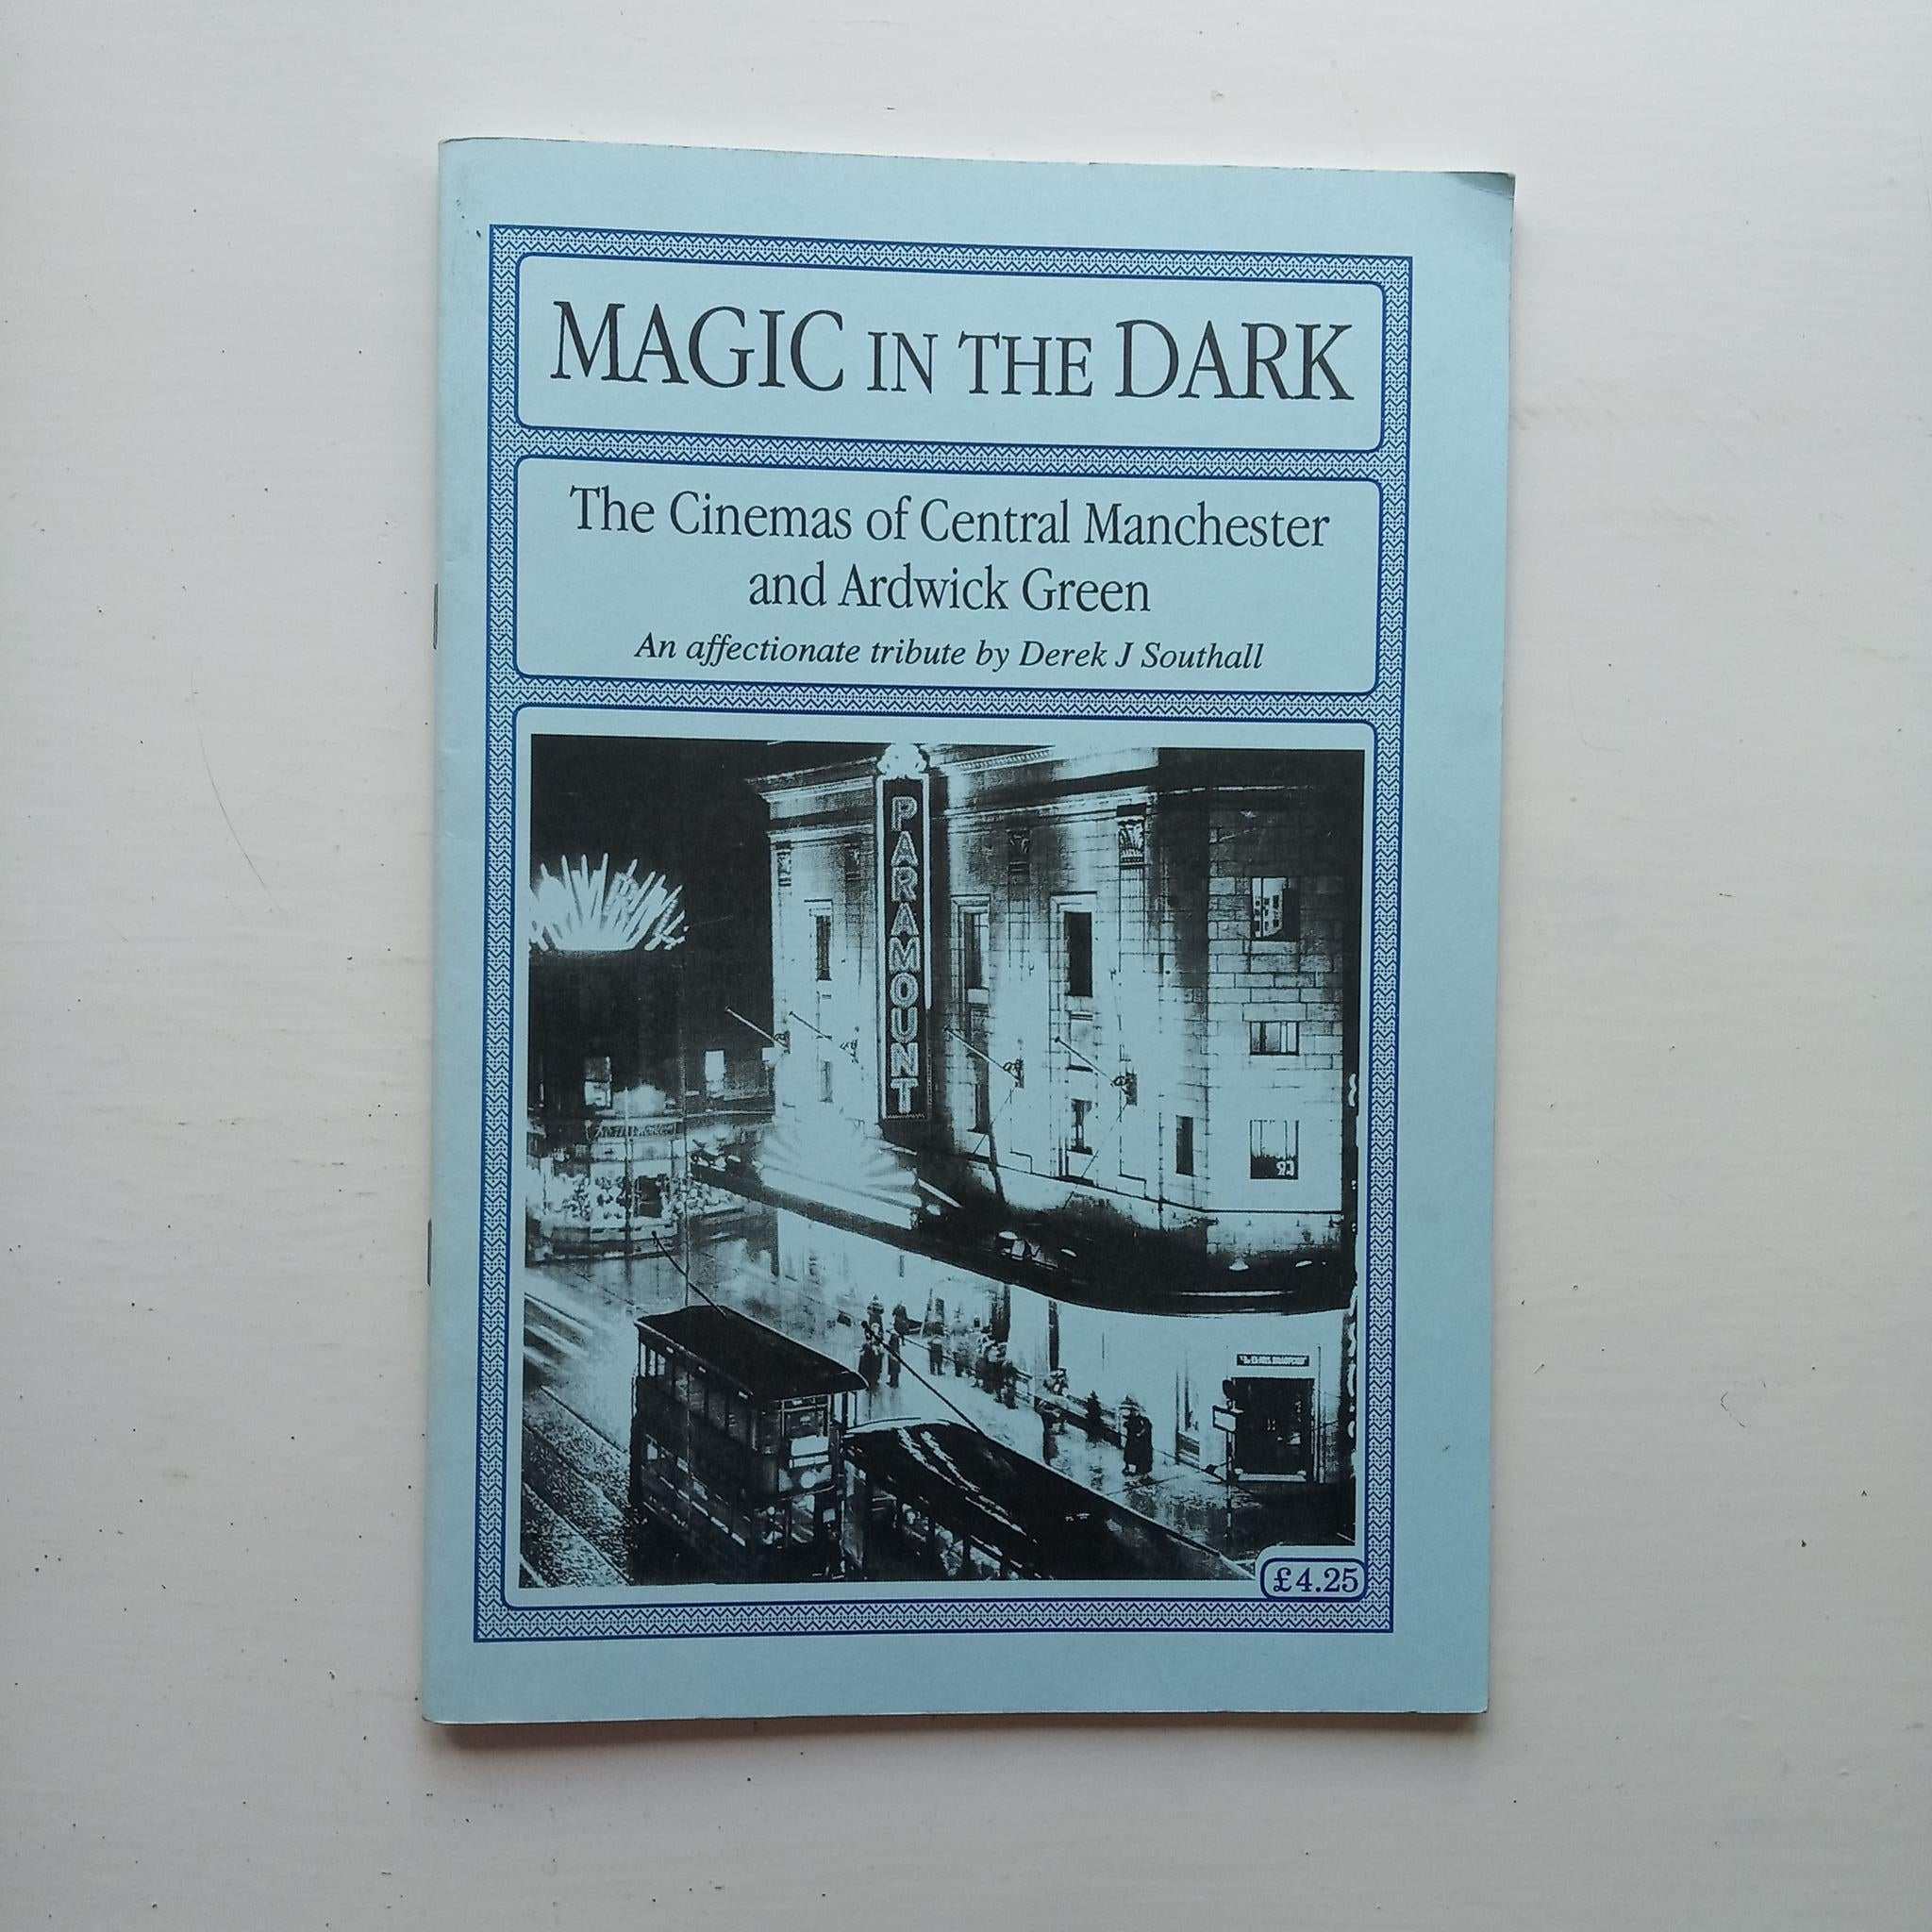 Magic in the Dark by Derek J. Southall